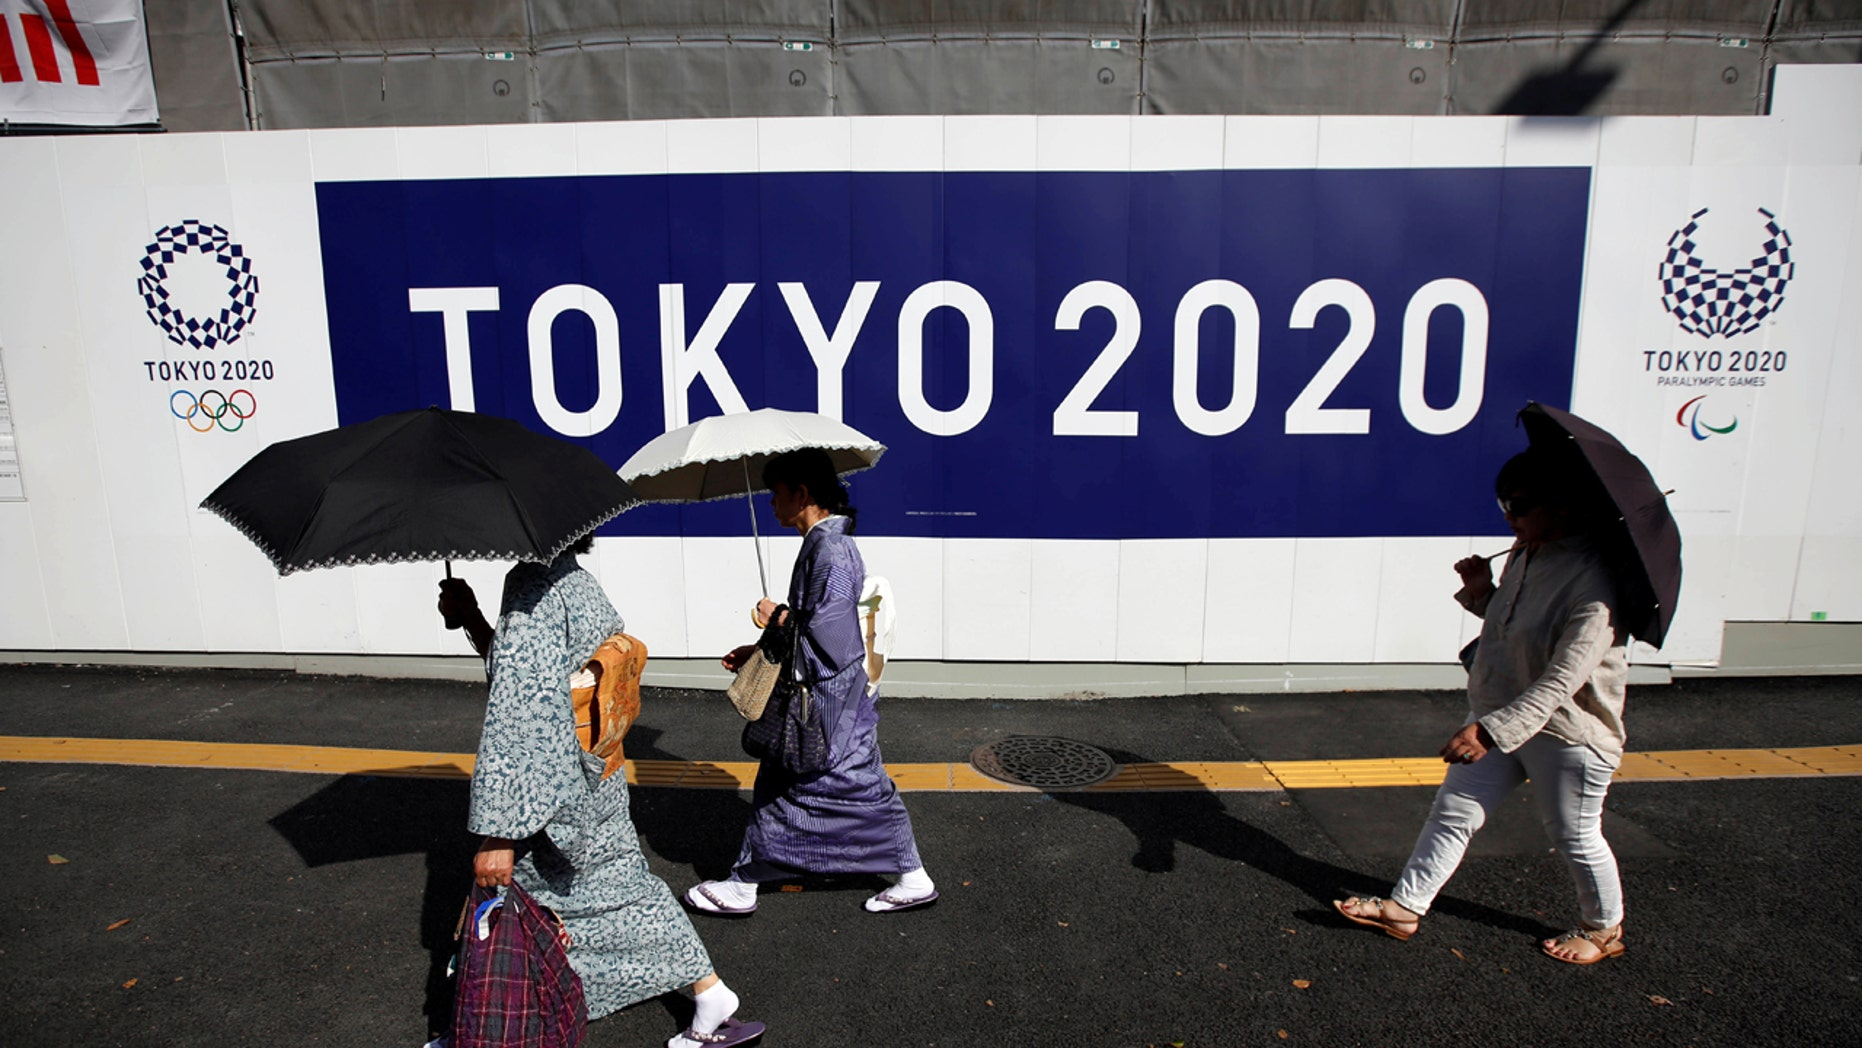 Kimono-clad women walk past at a construction site of a building displaying Tokyo 2020 Olympics and Paralympics emblems in Tokyo, Japan.